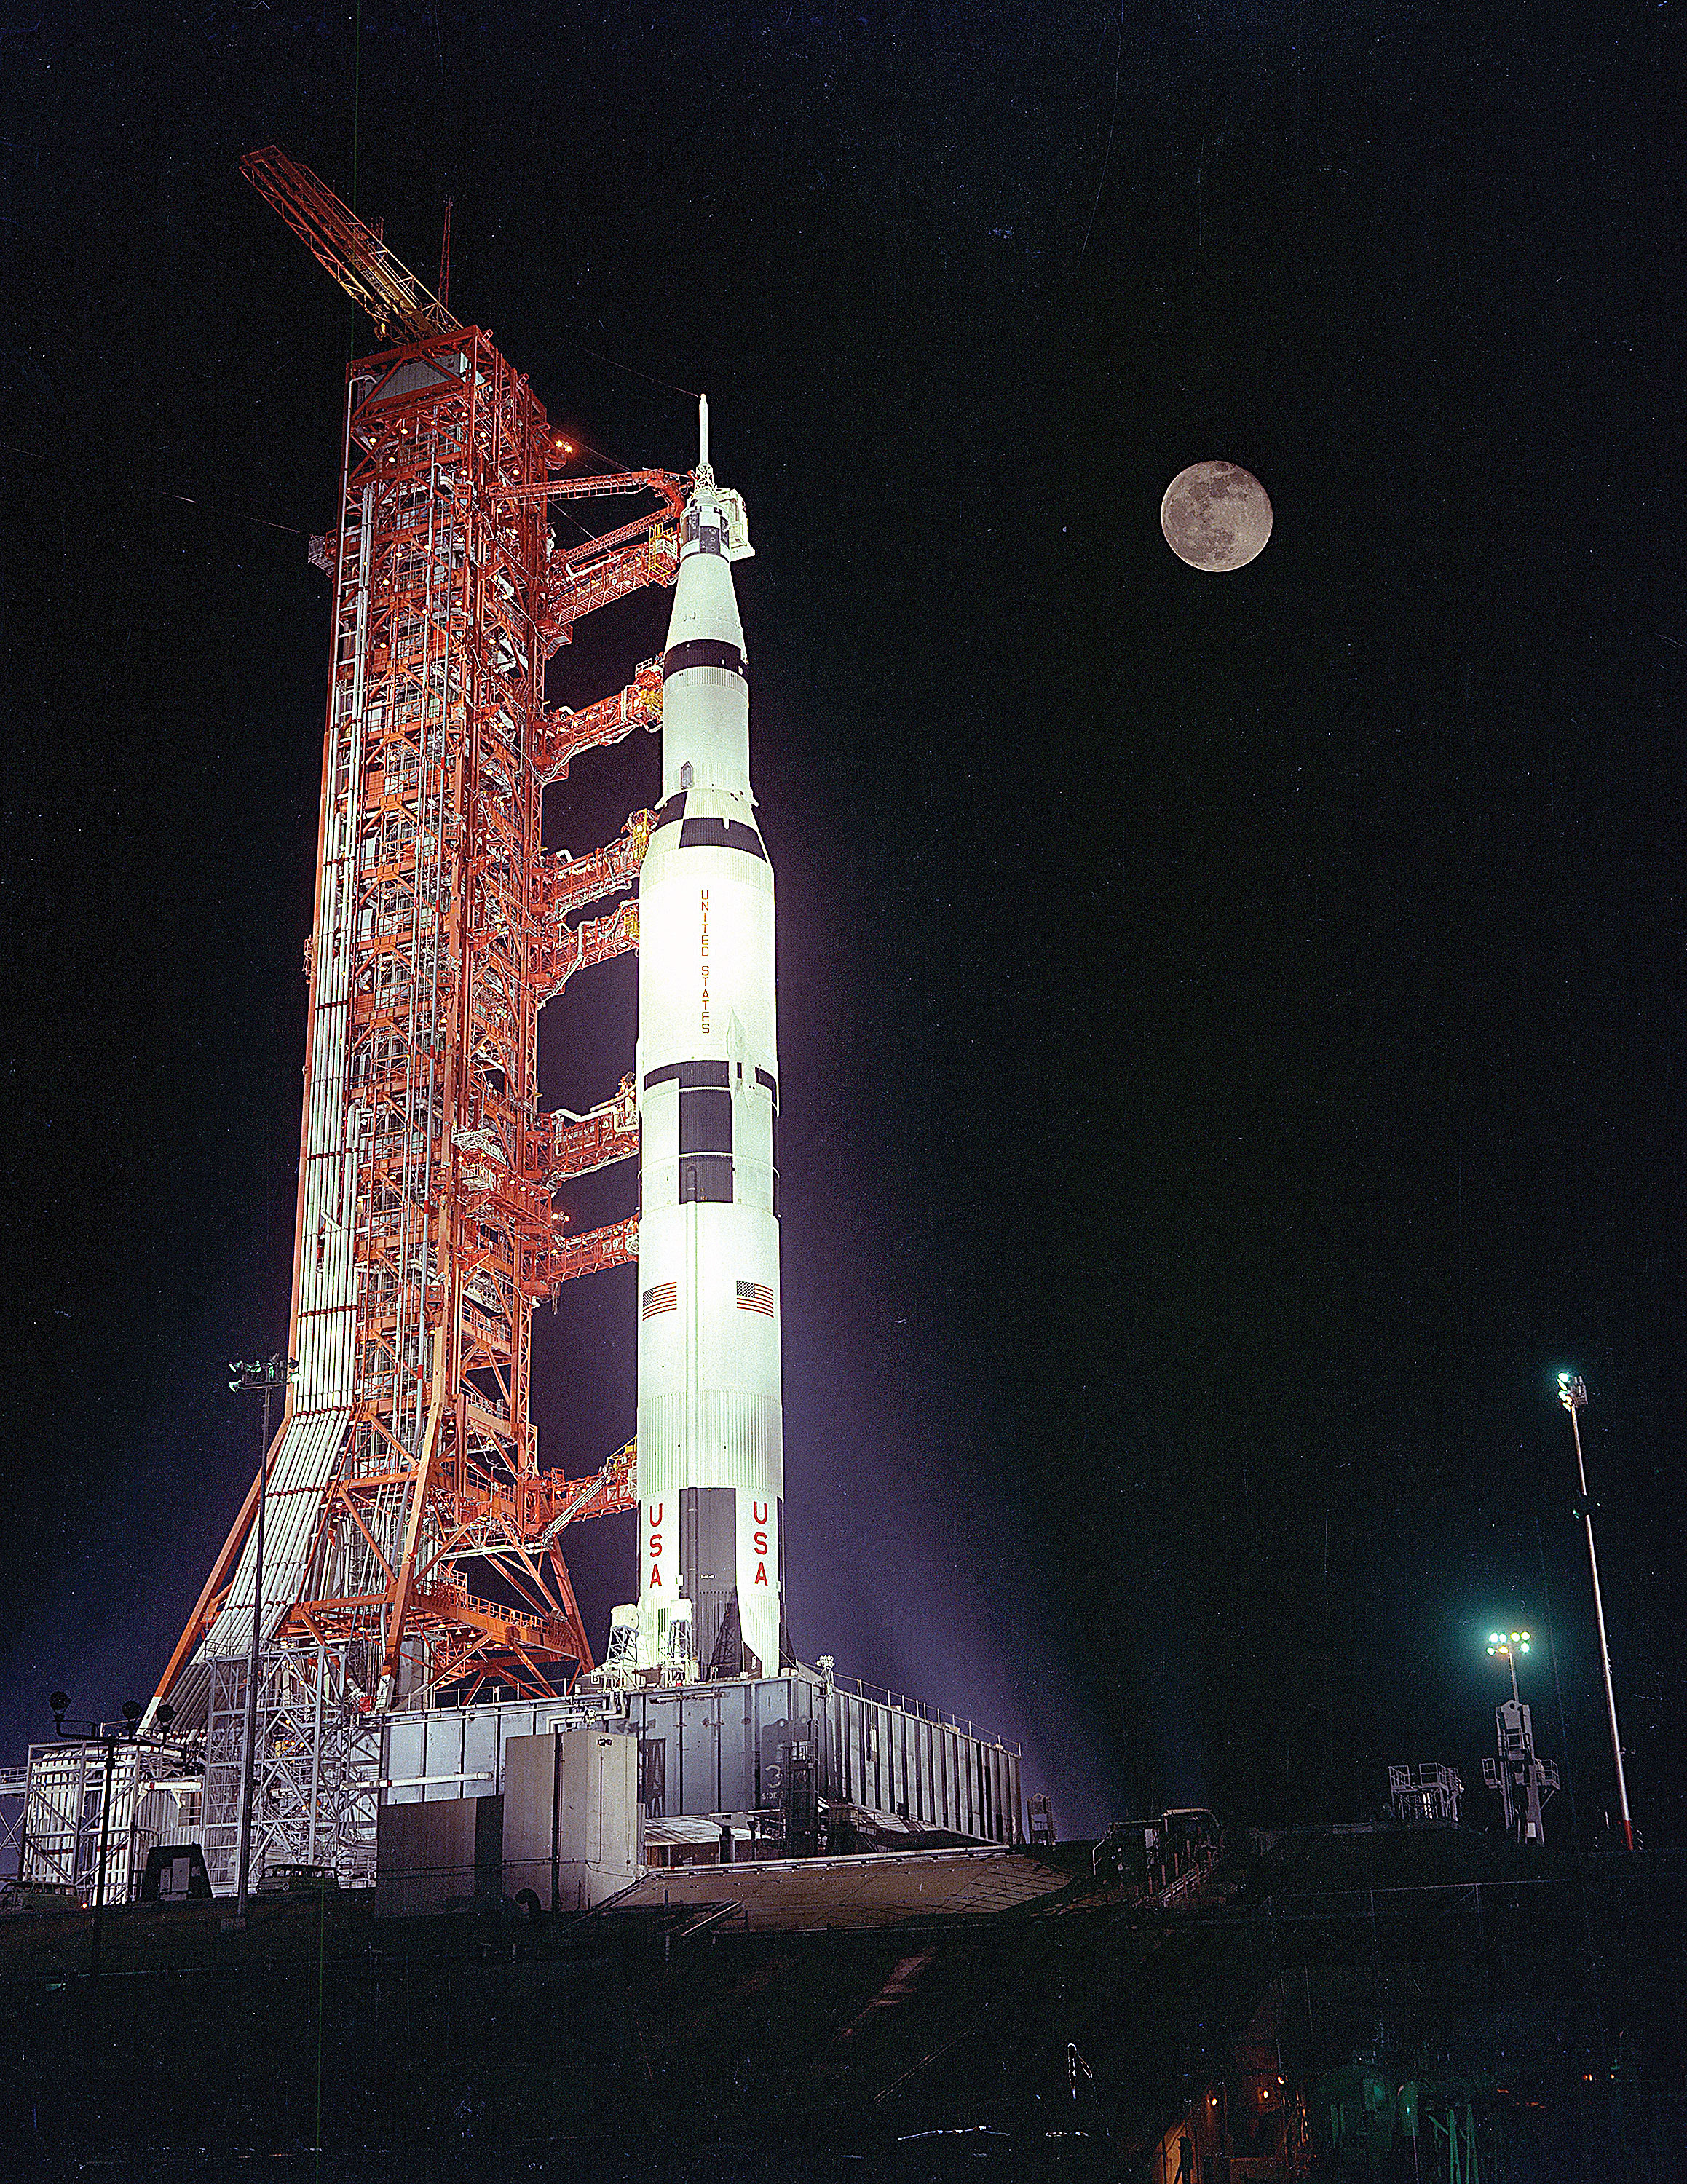 The Apollo 17 rocket is shown at night with the Moon in the background. Credit: NASA via J.L. Pickering/Retro Space Images